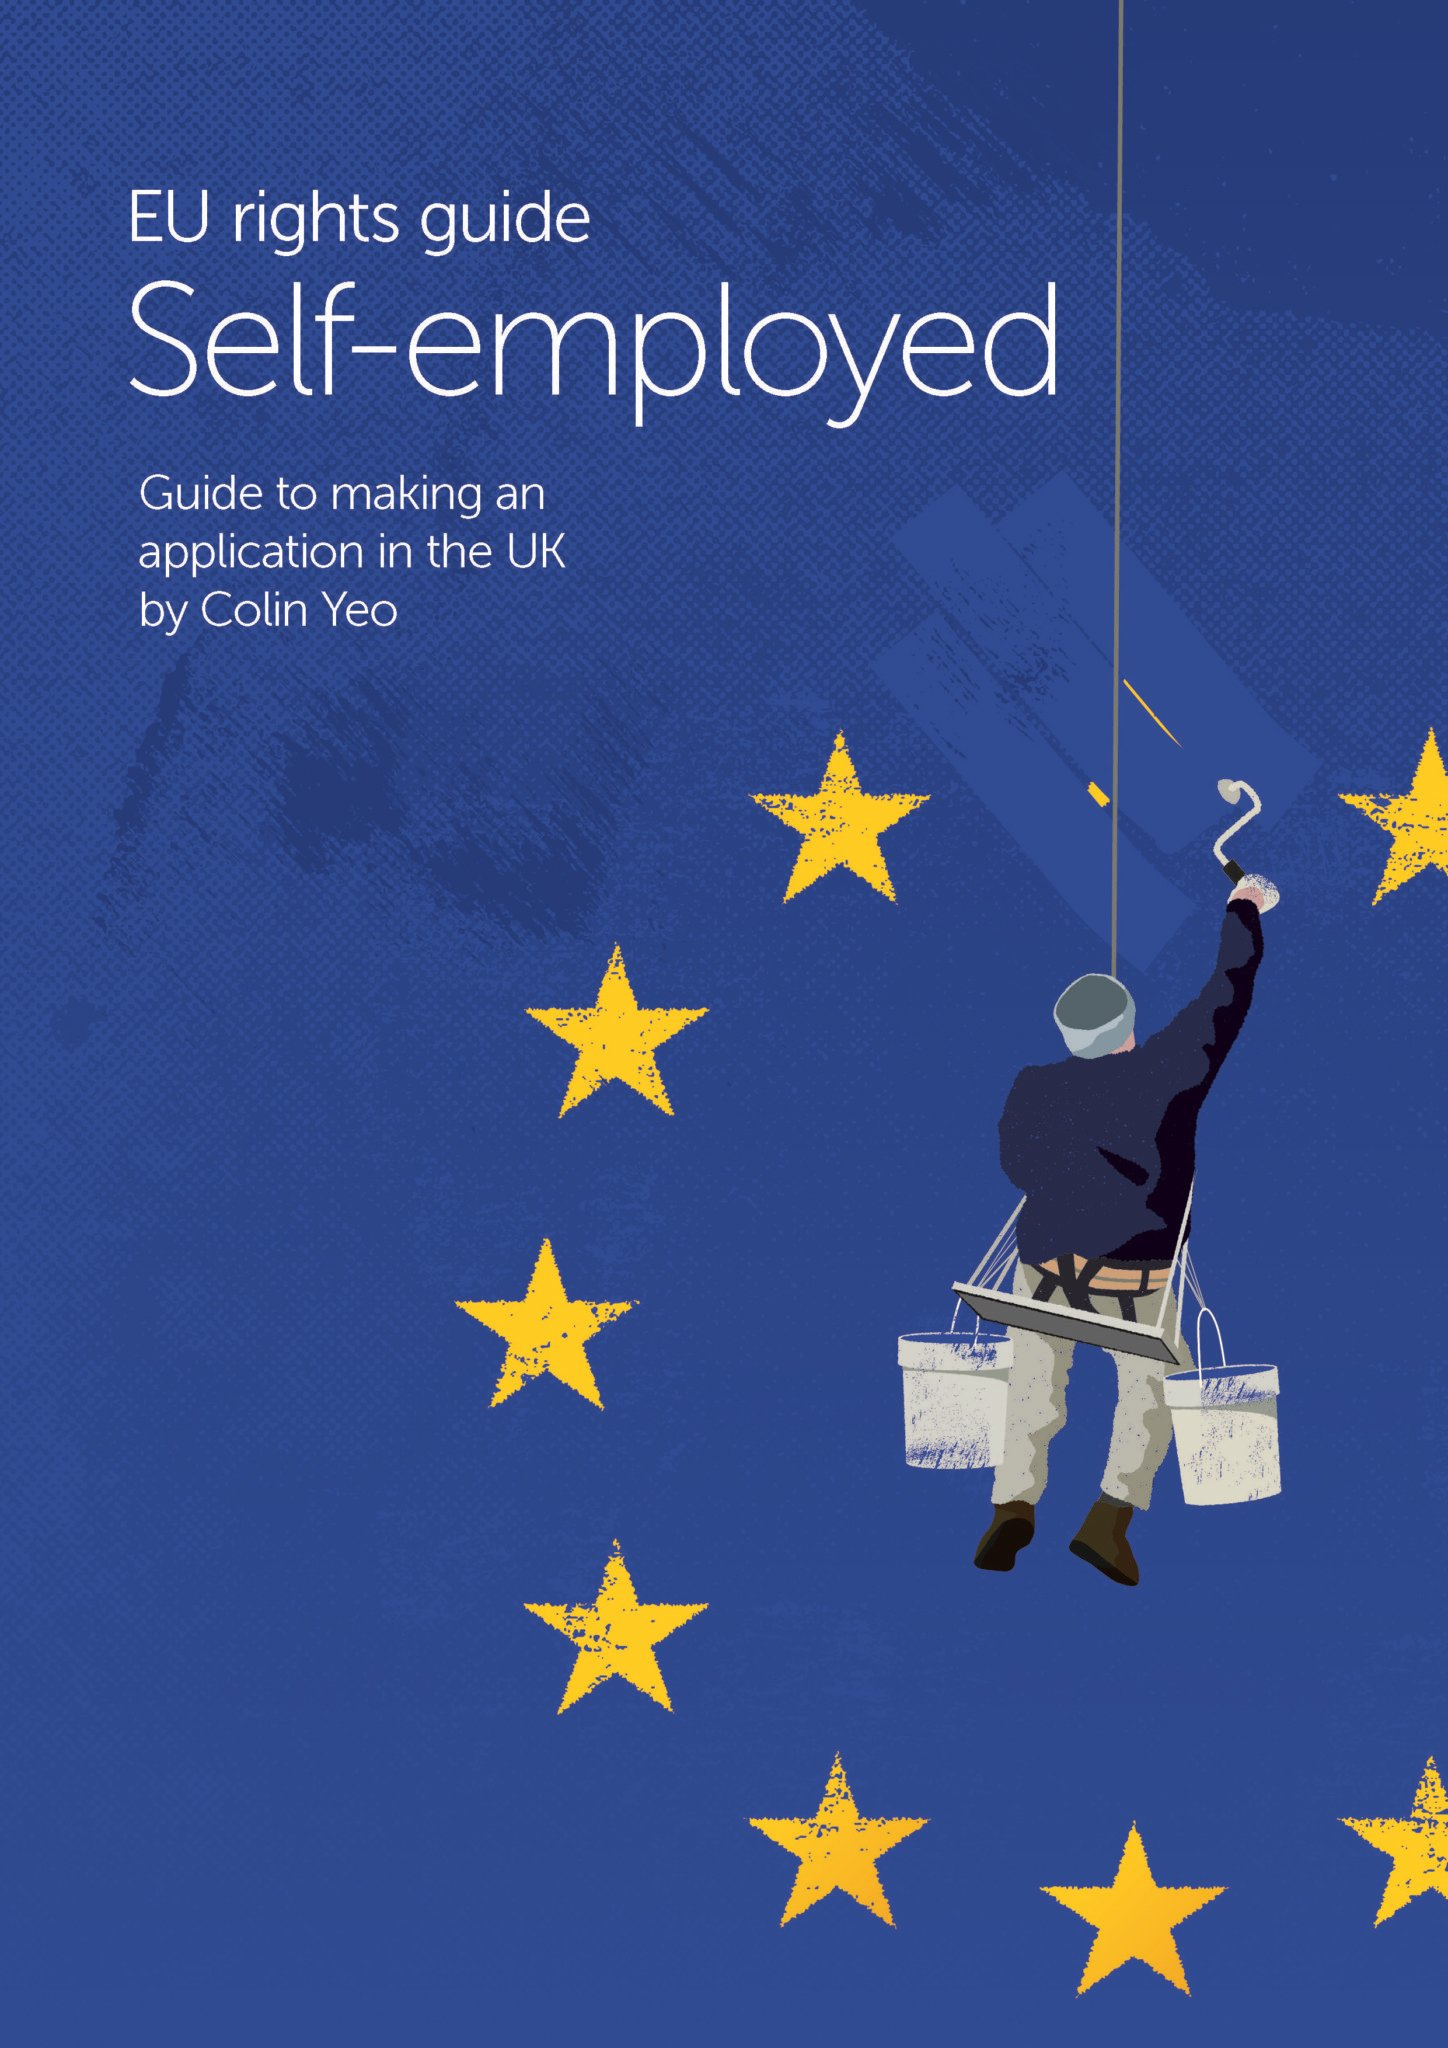 EU rights guide – Self-employed